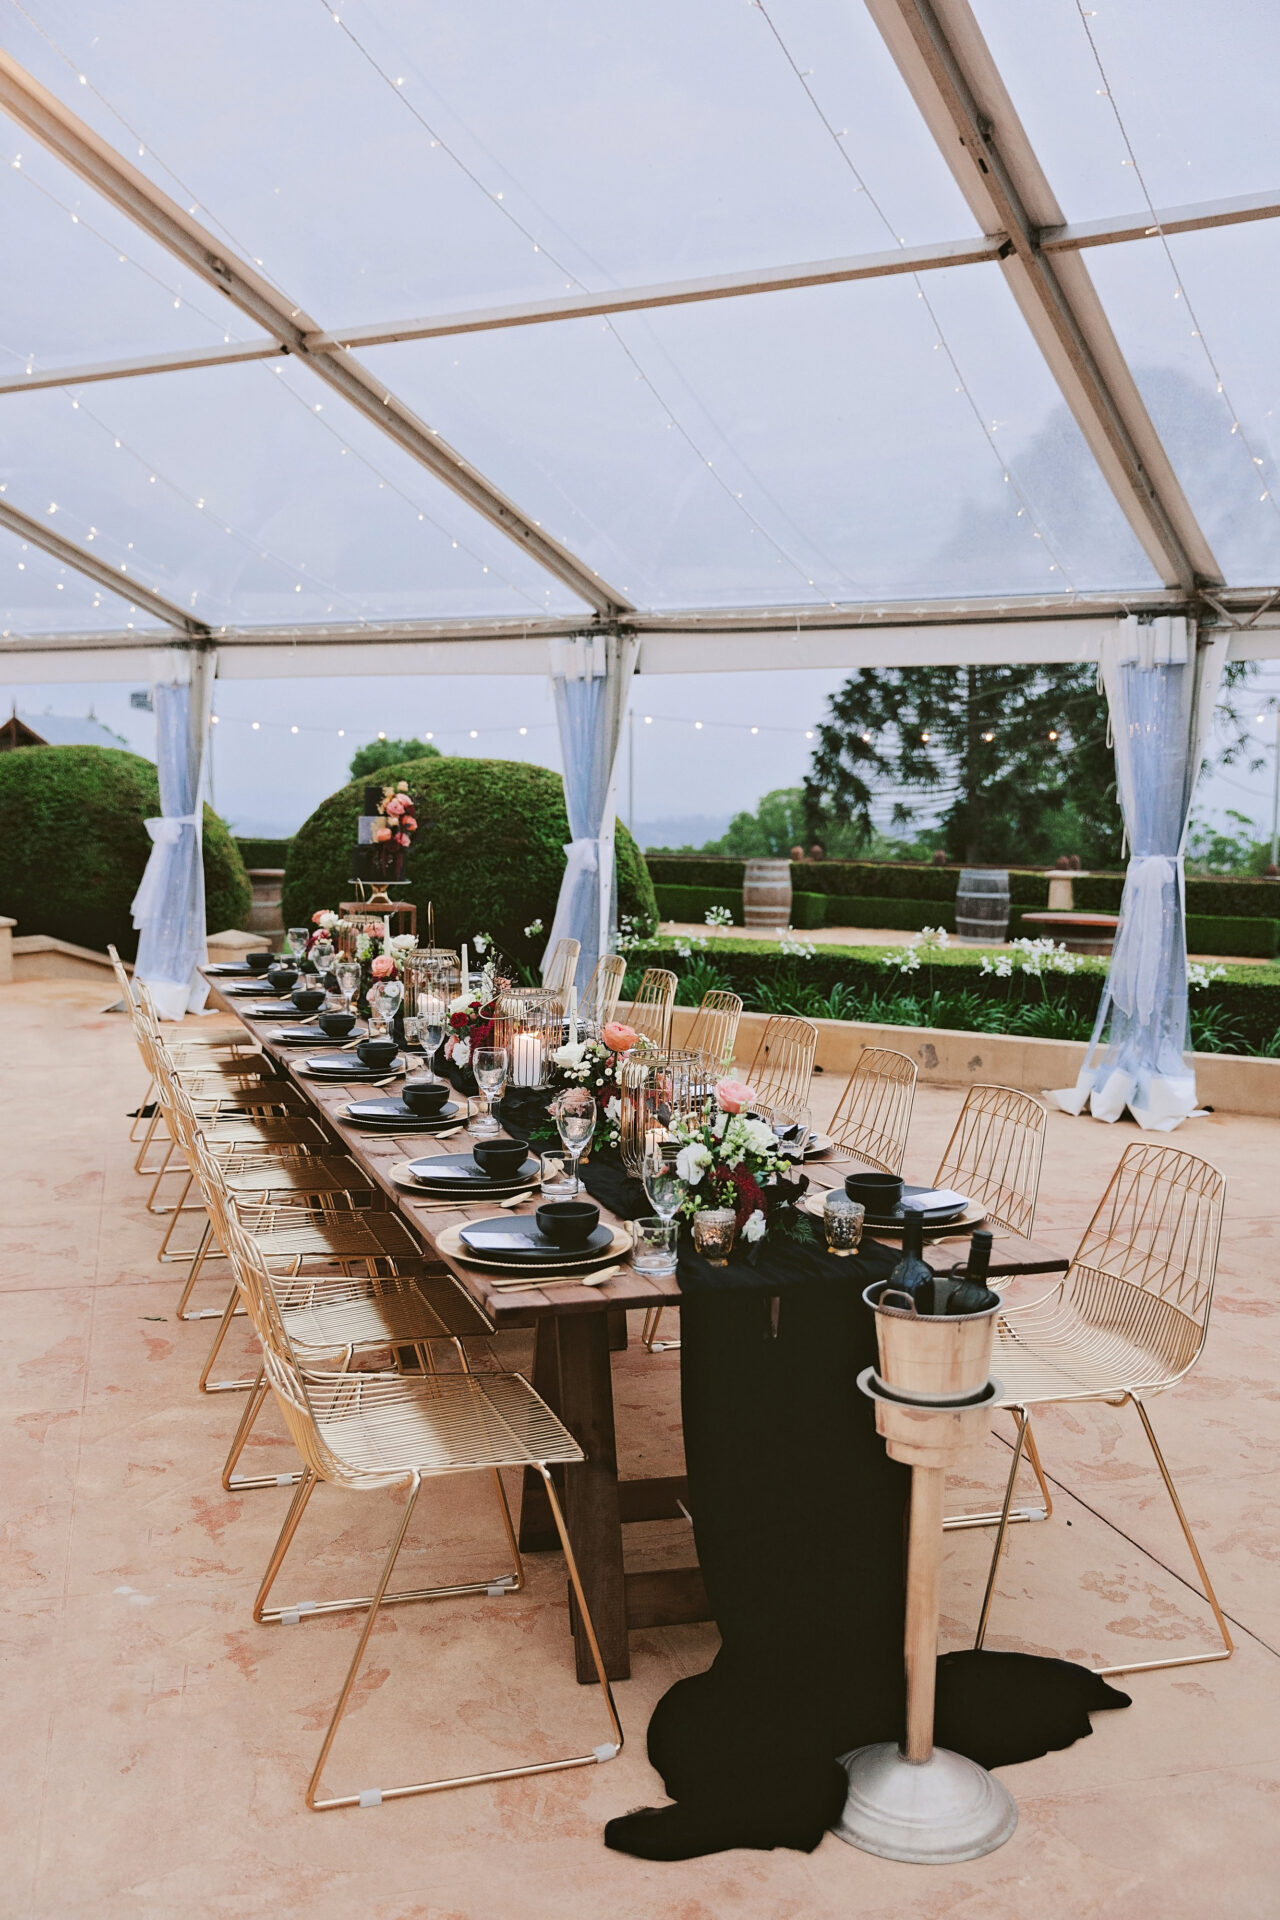 Enchanted Dining Under the stars Flaxton Gardens marqueewedding